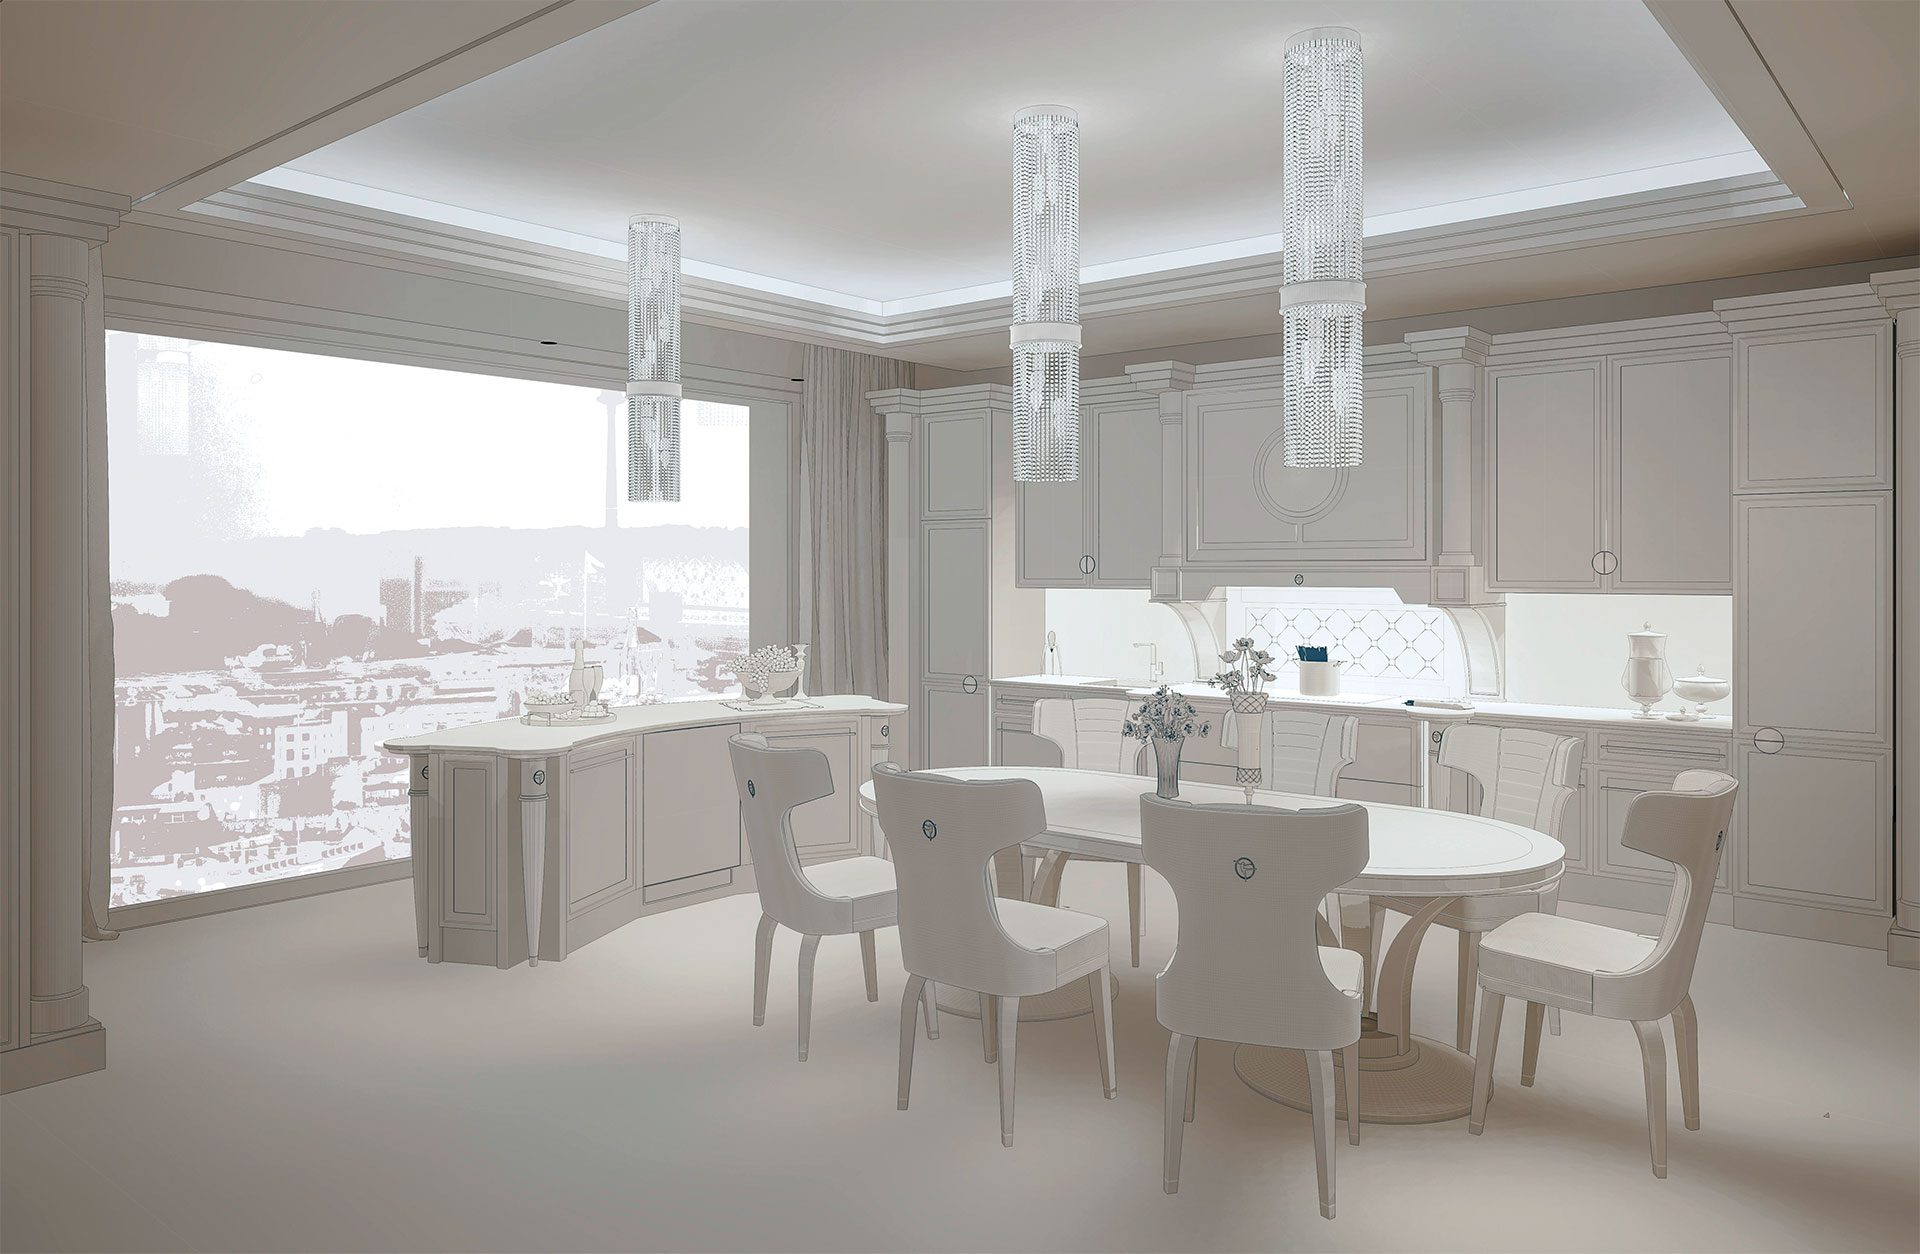 Faoma rendering of the custom-made Helvia kitchen